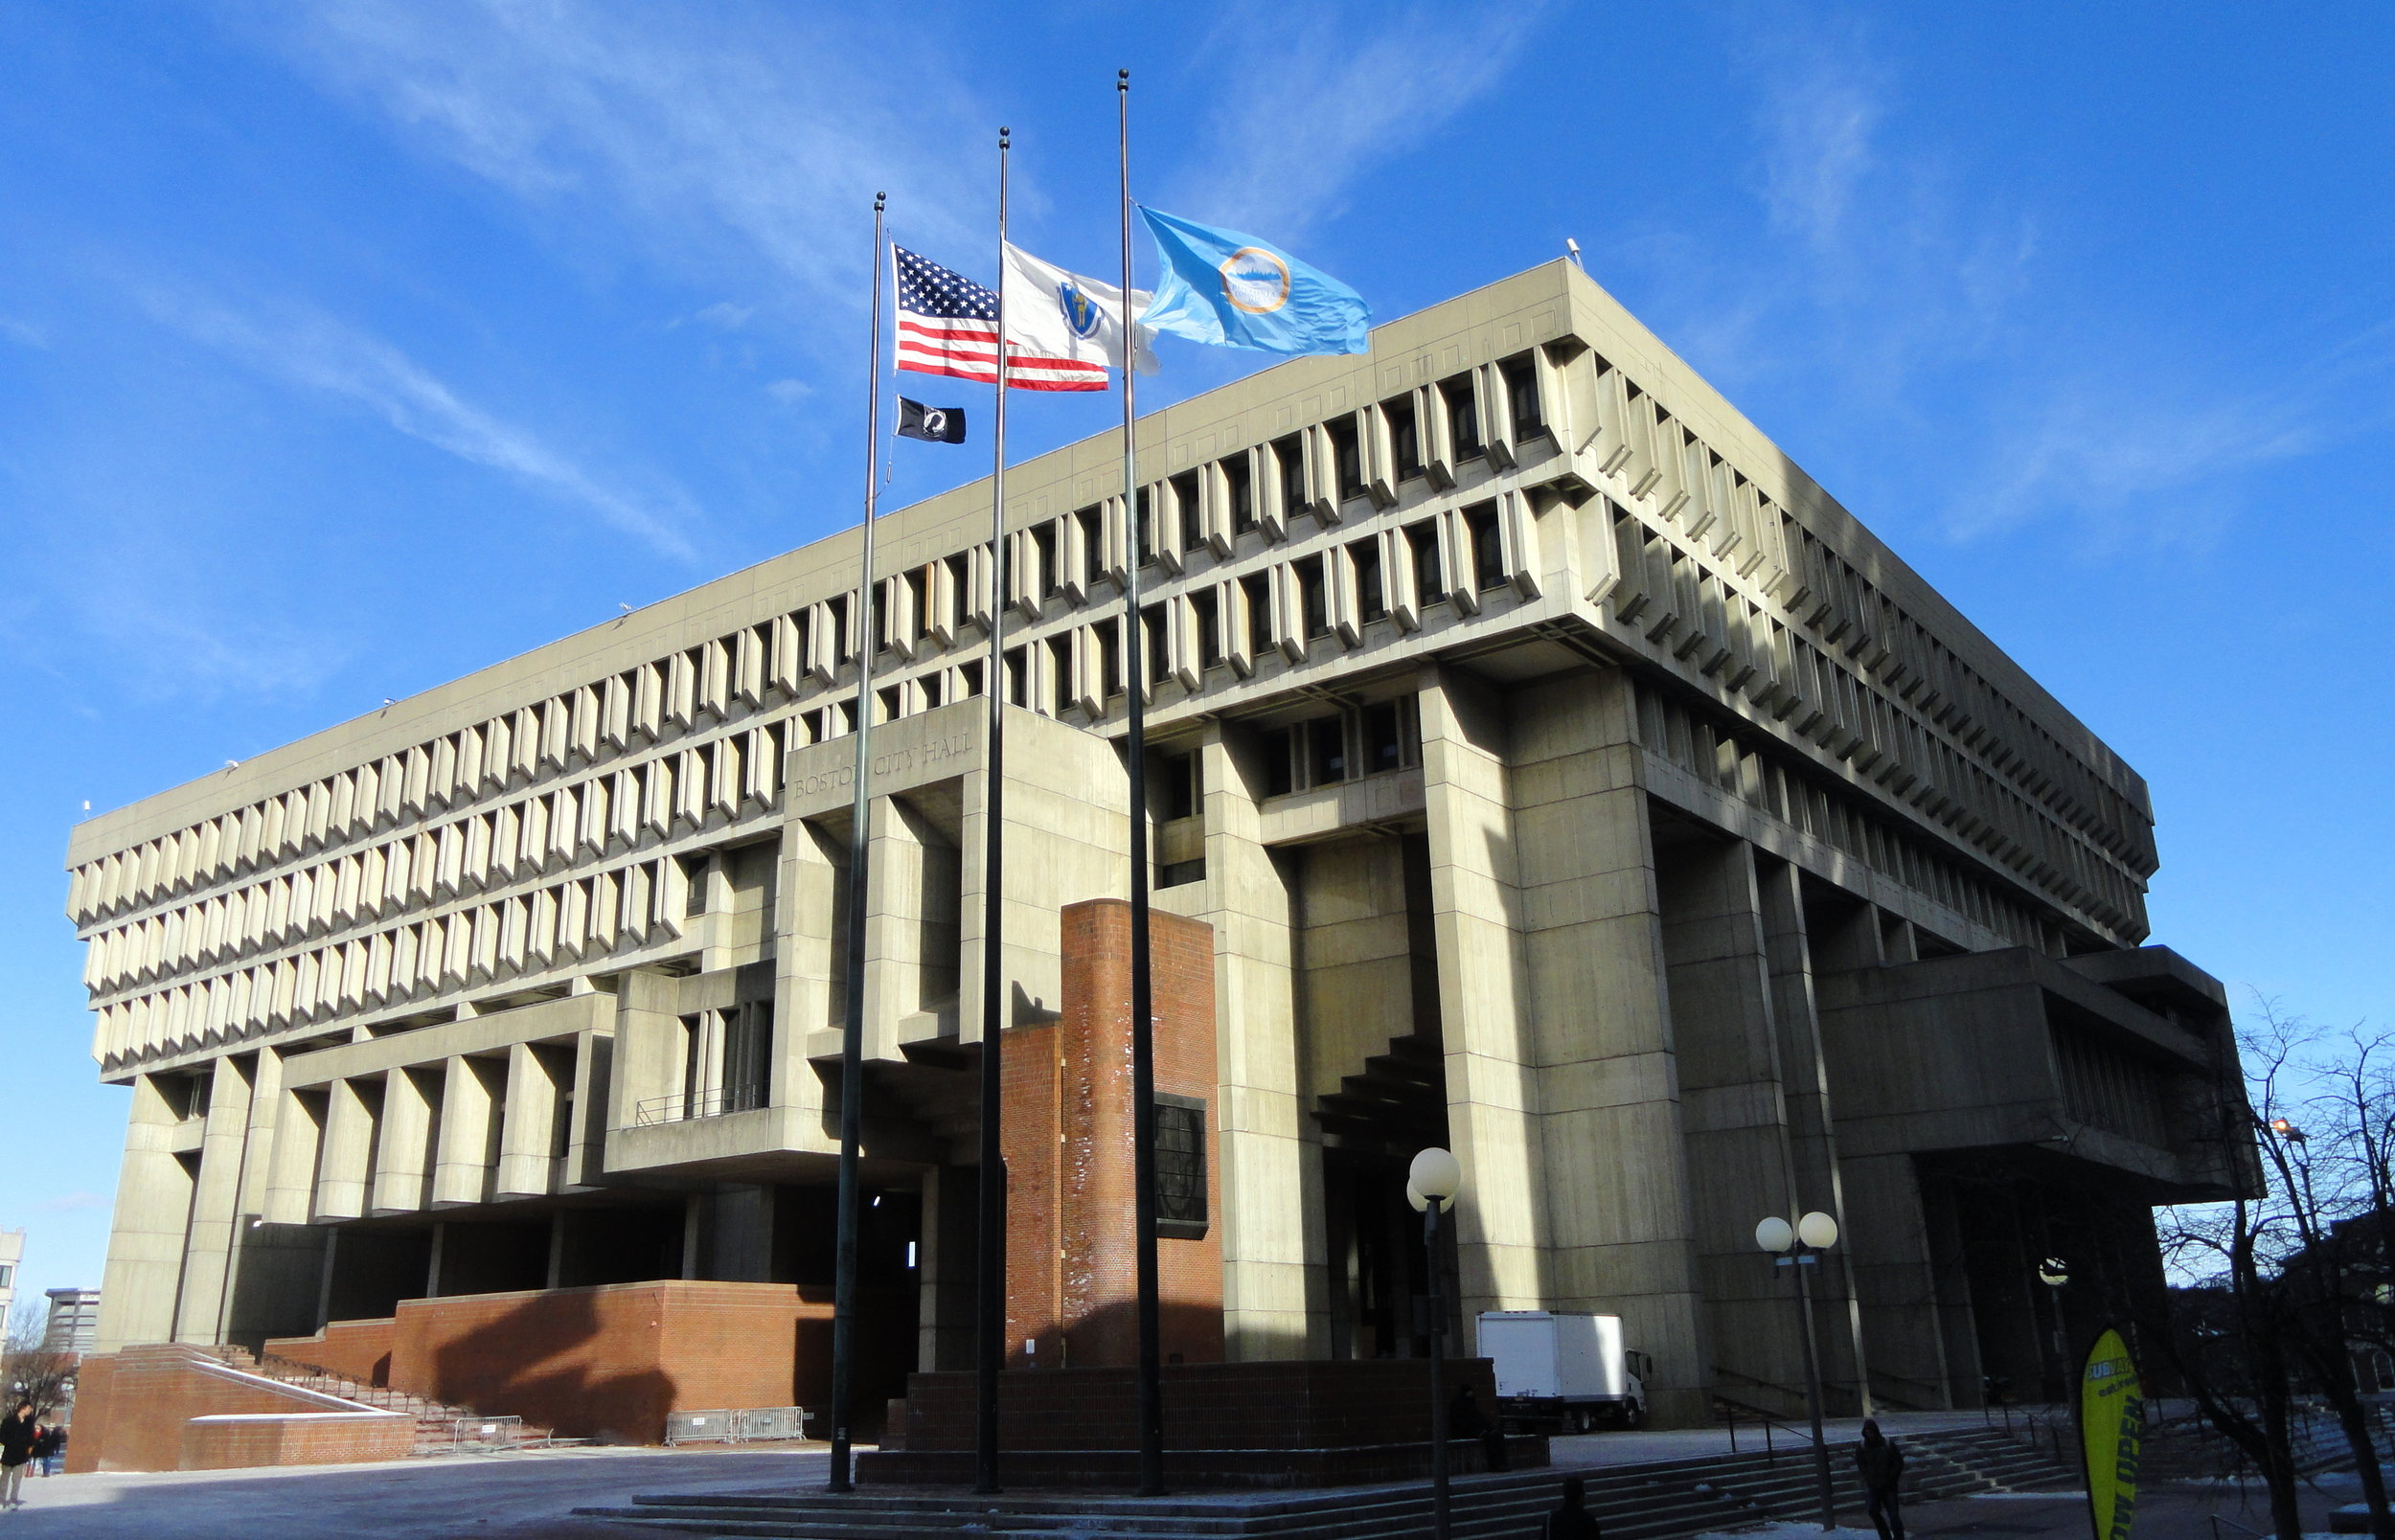 In Public Letter, 10 Boston City Councilors Decry 'Chilling Effect' Of Boston Calling Decision